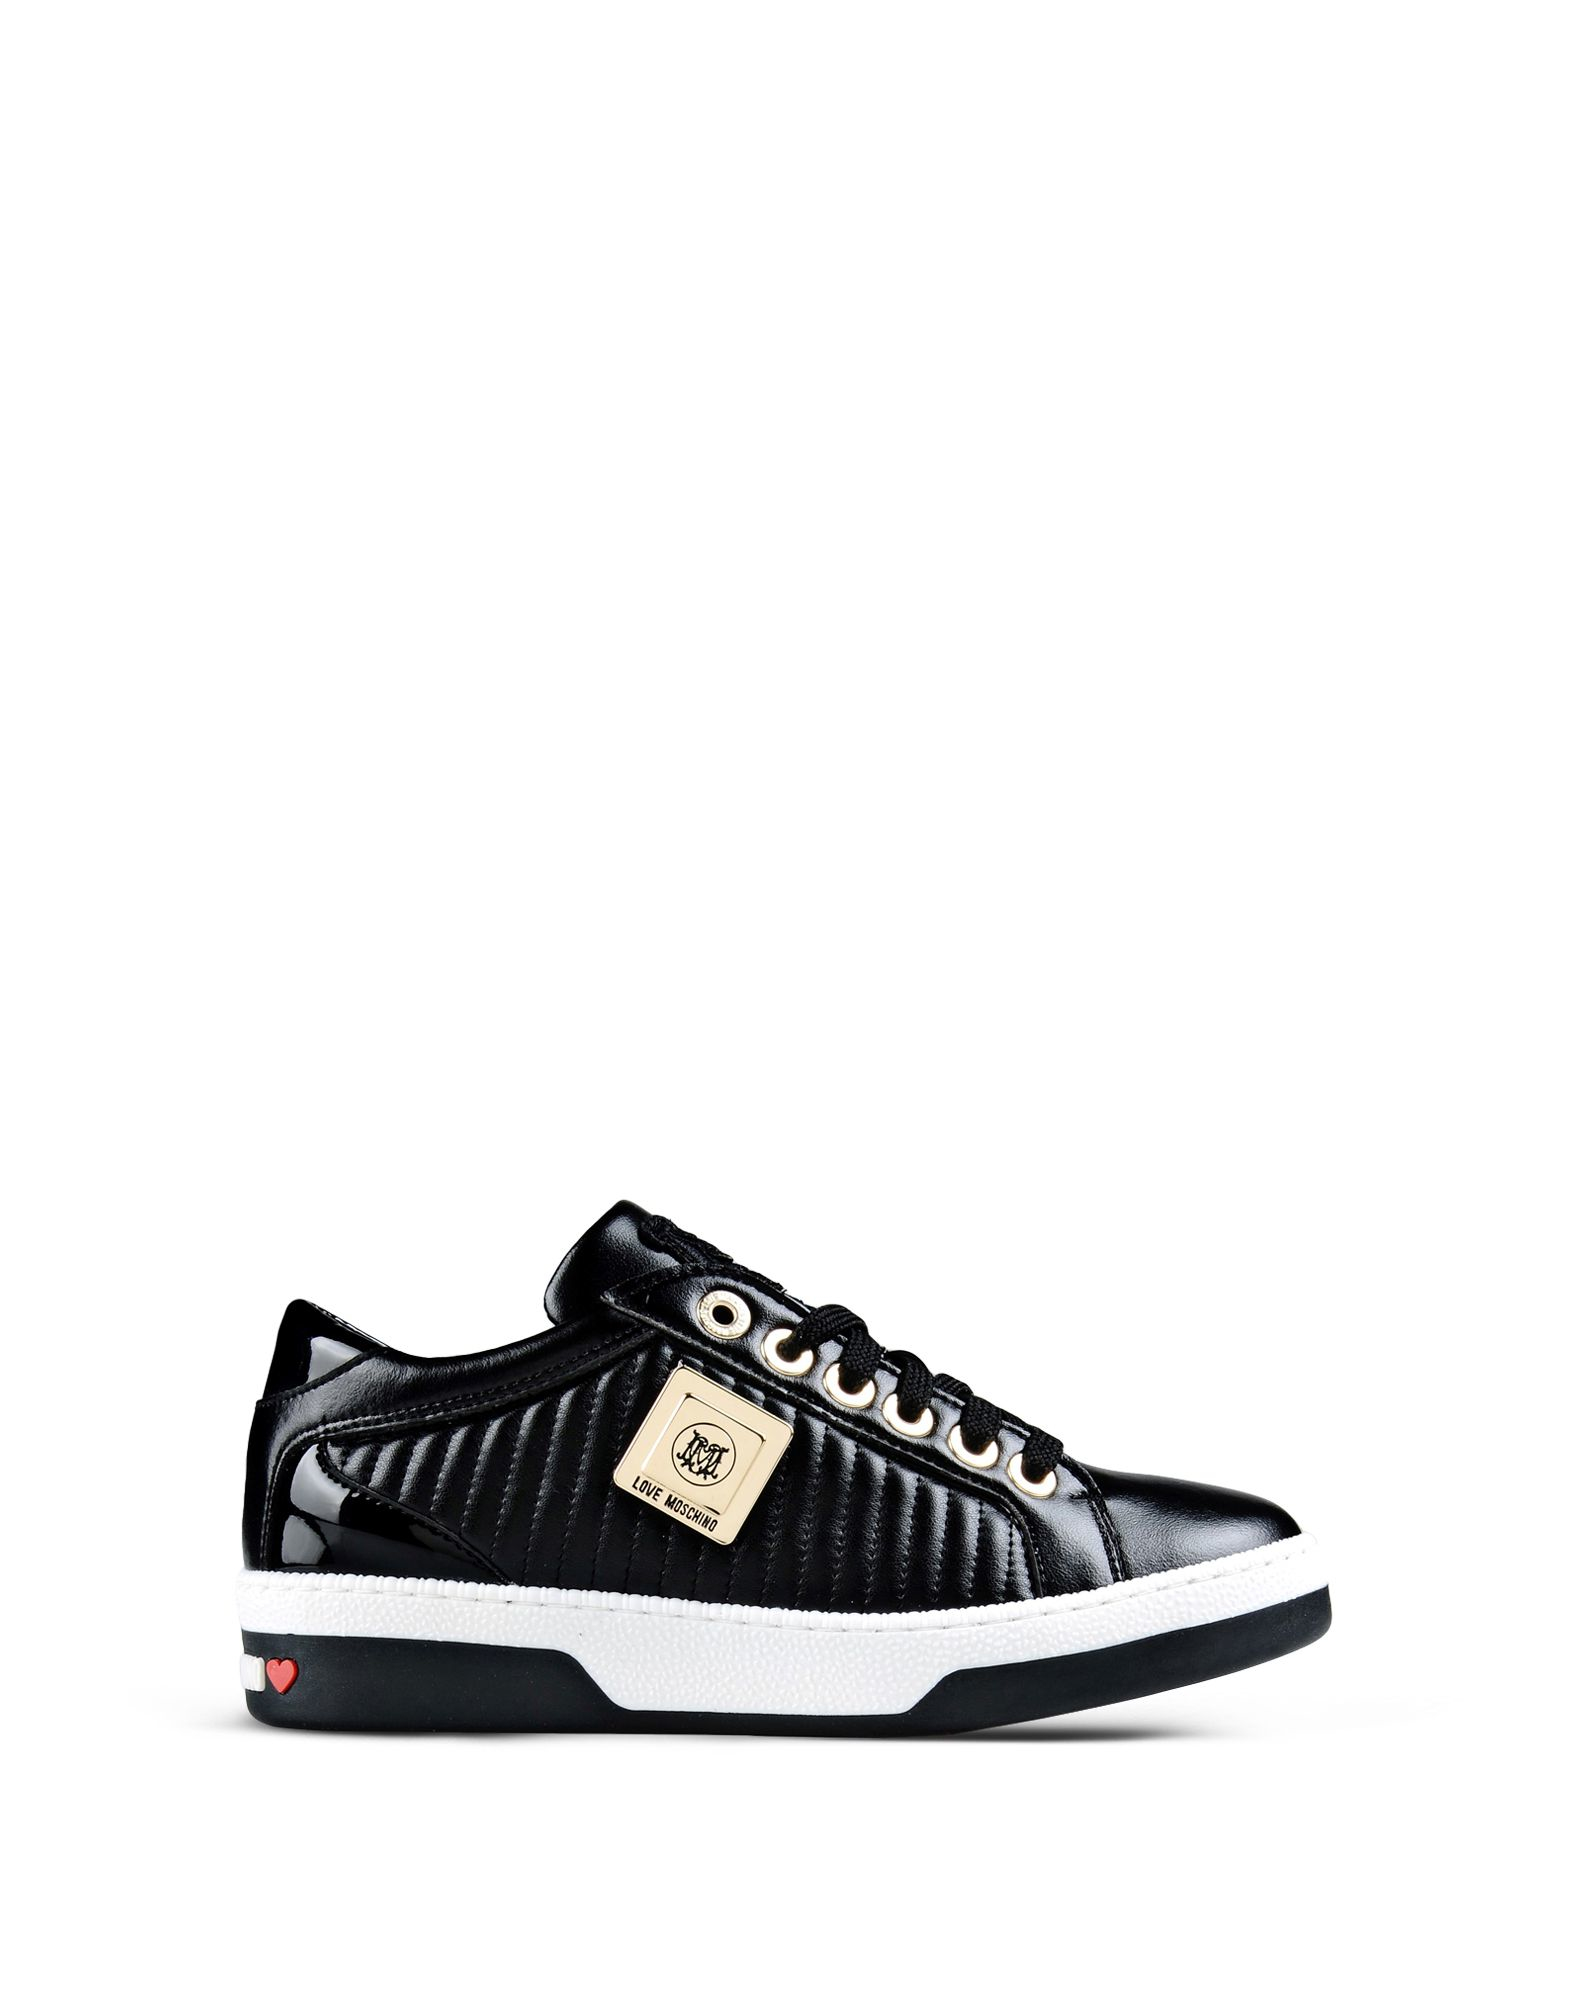 Love Moschino Sneakers in Black